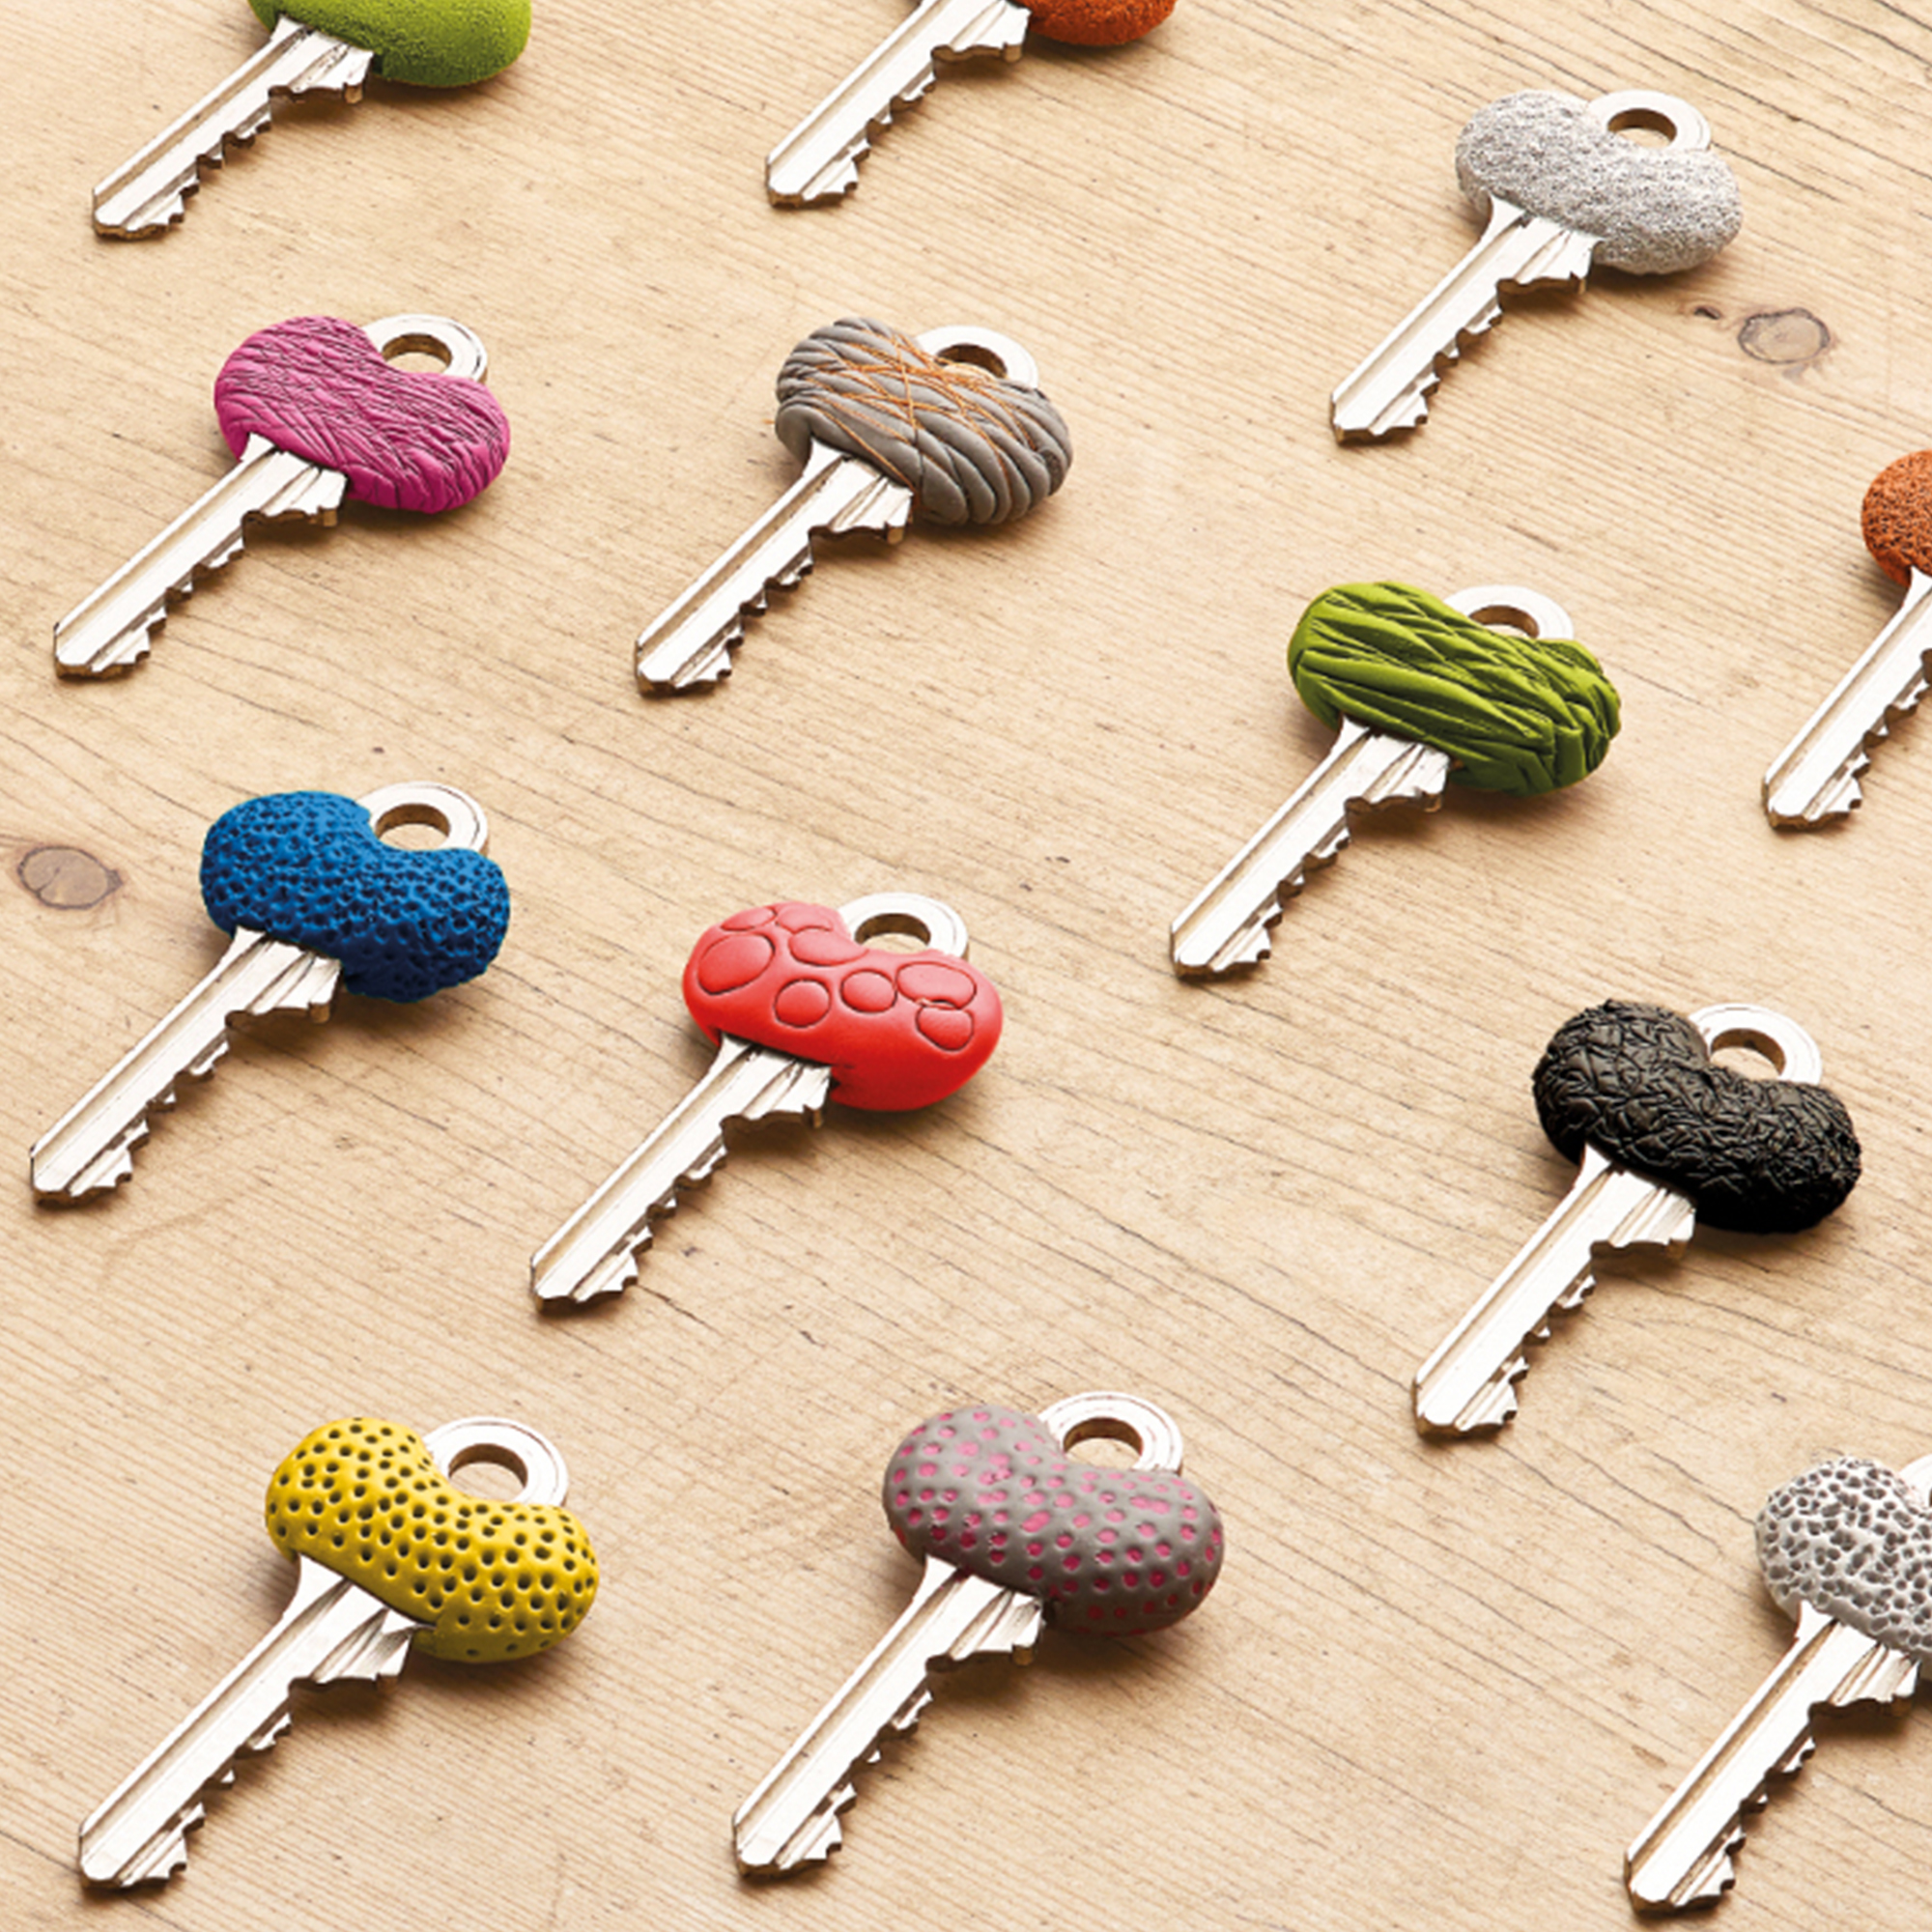 9 Ways To Organise Your Keys With Diy Key Labels Sugru